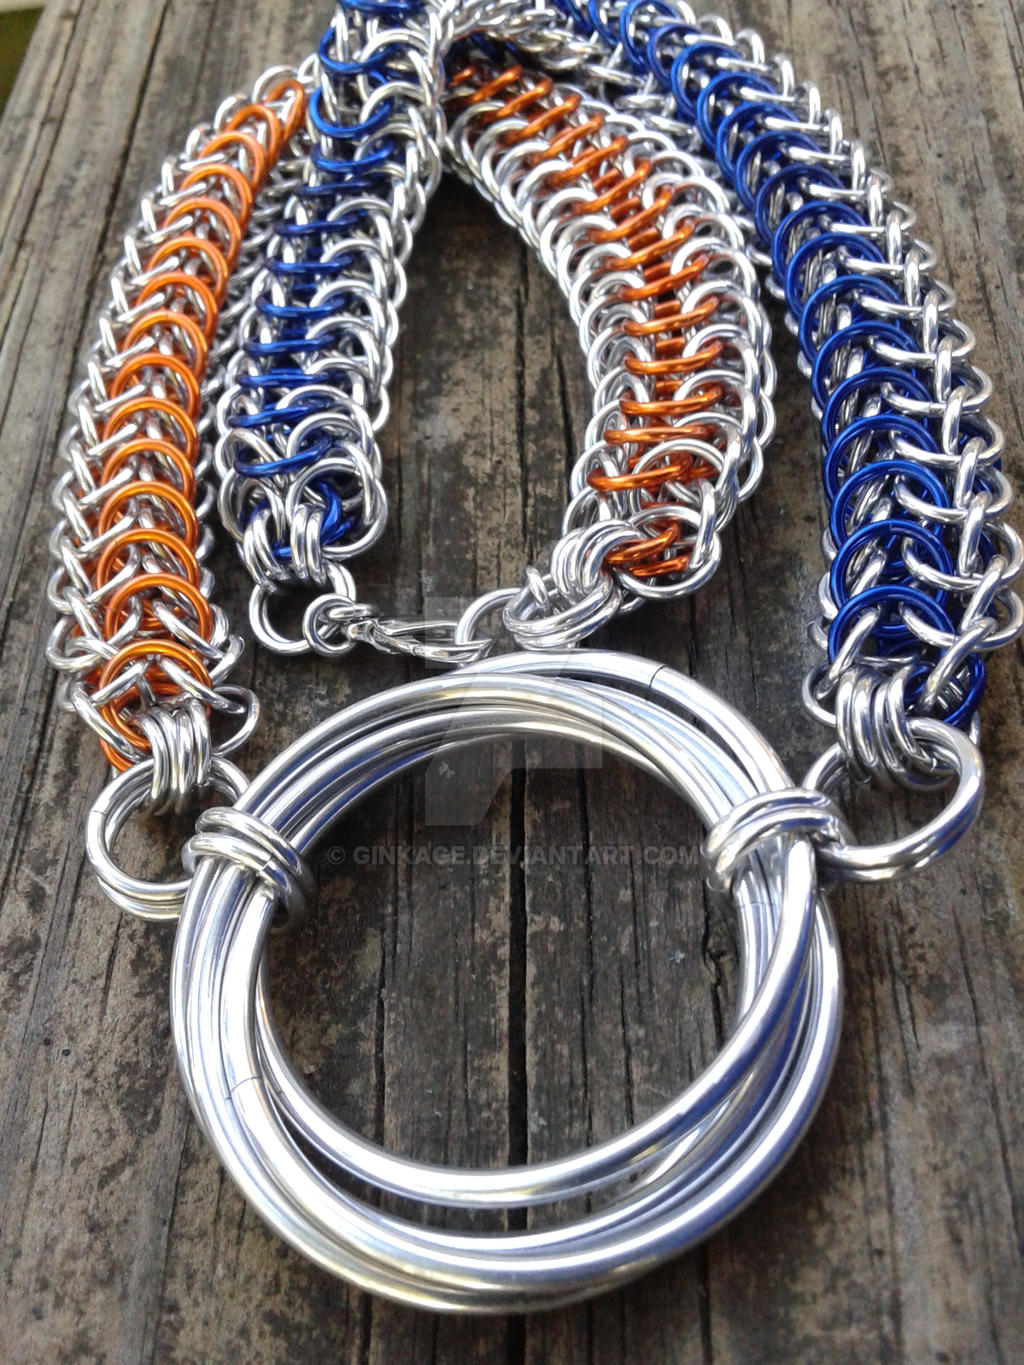 Now You're Maille-ing With Portals by Ginkage